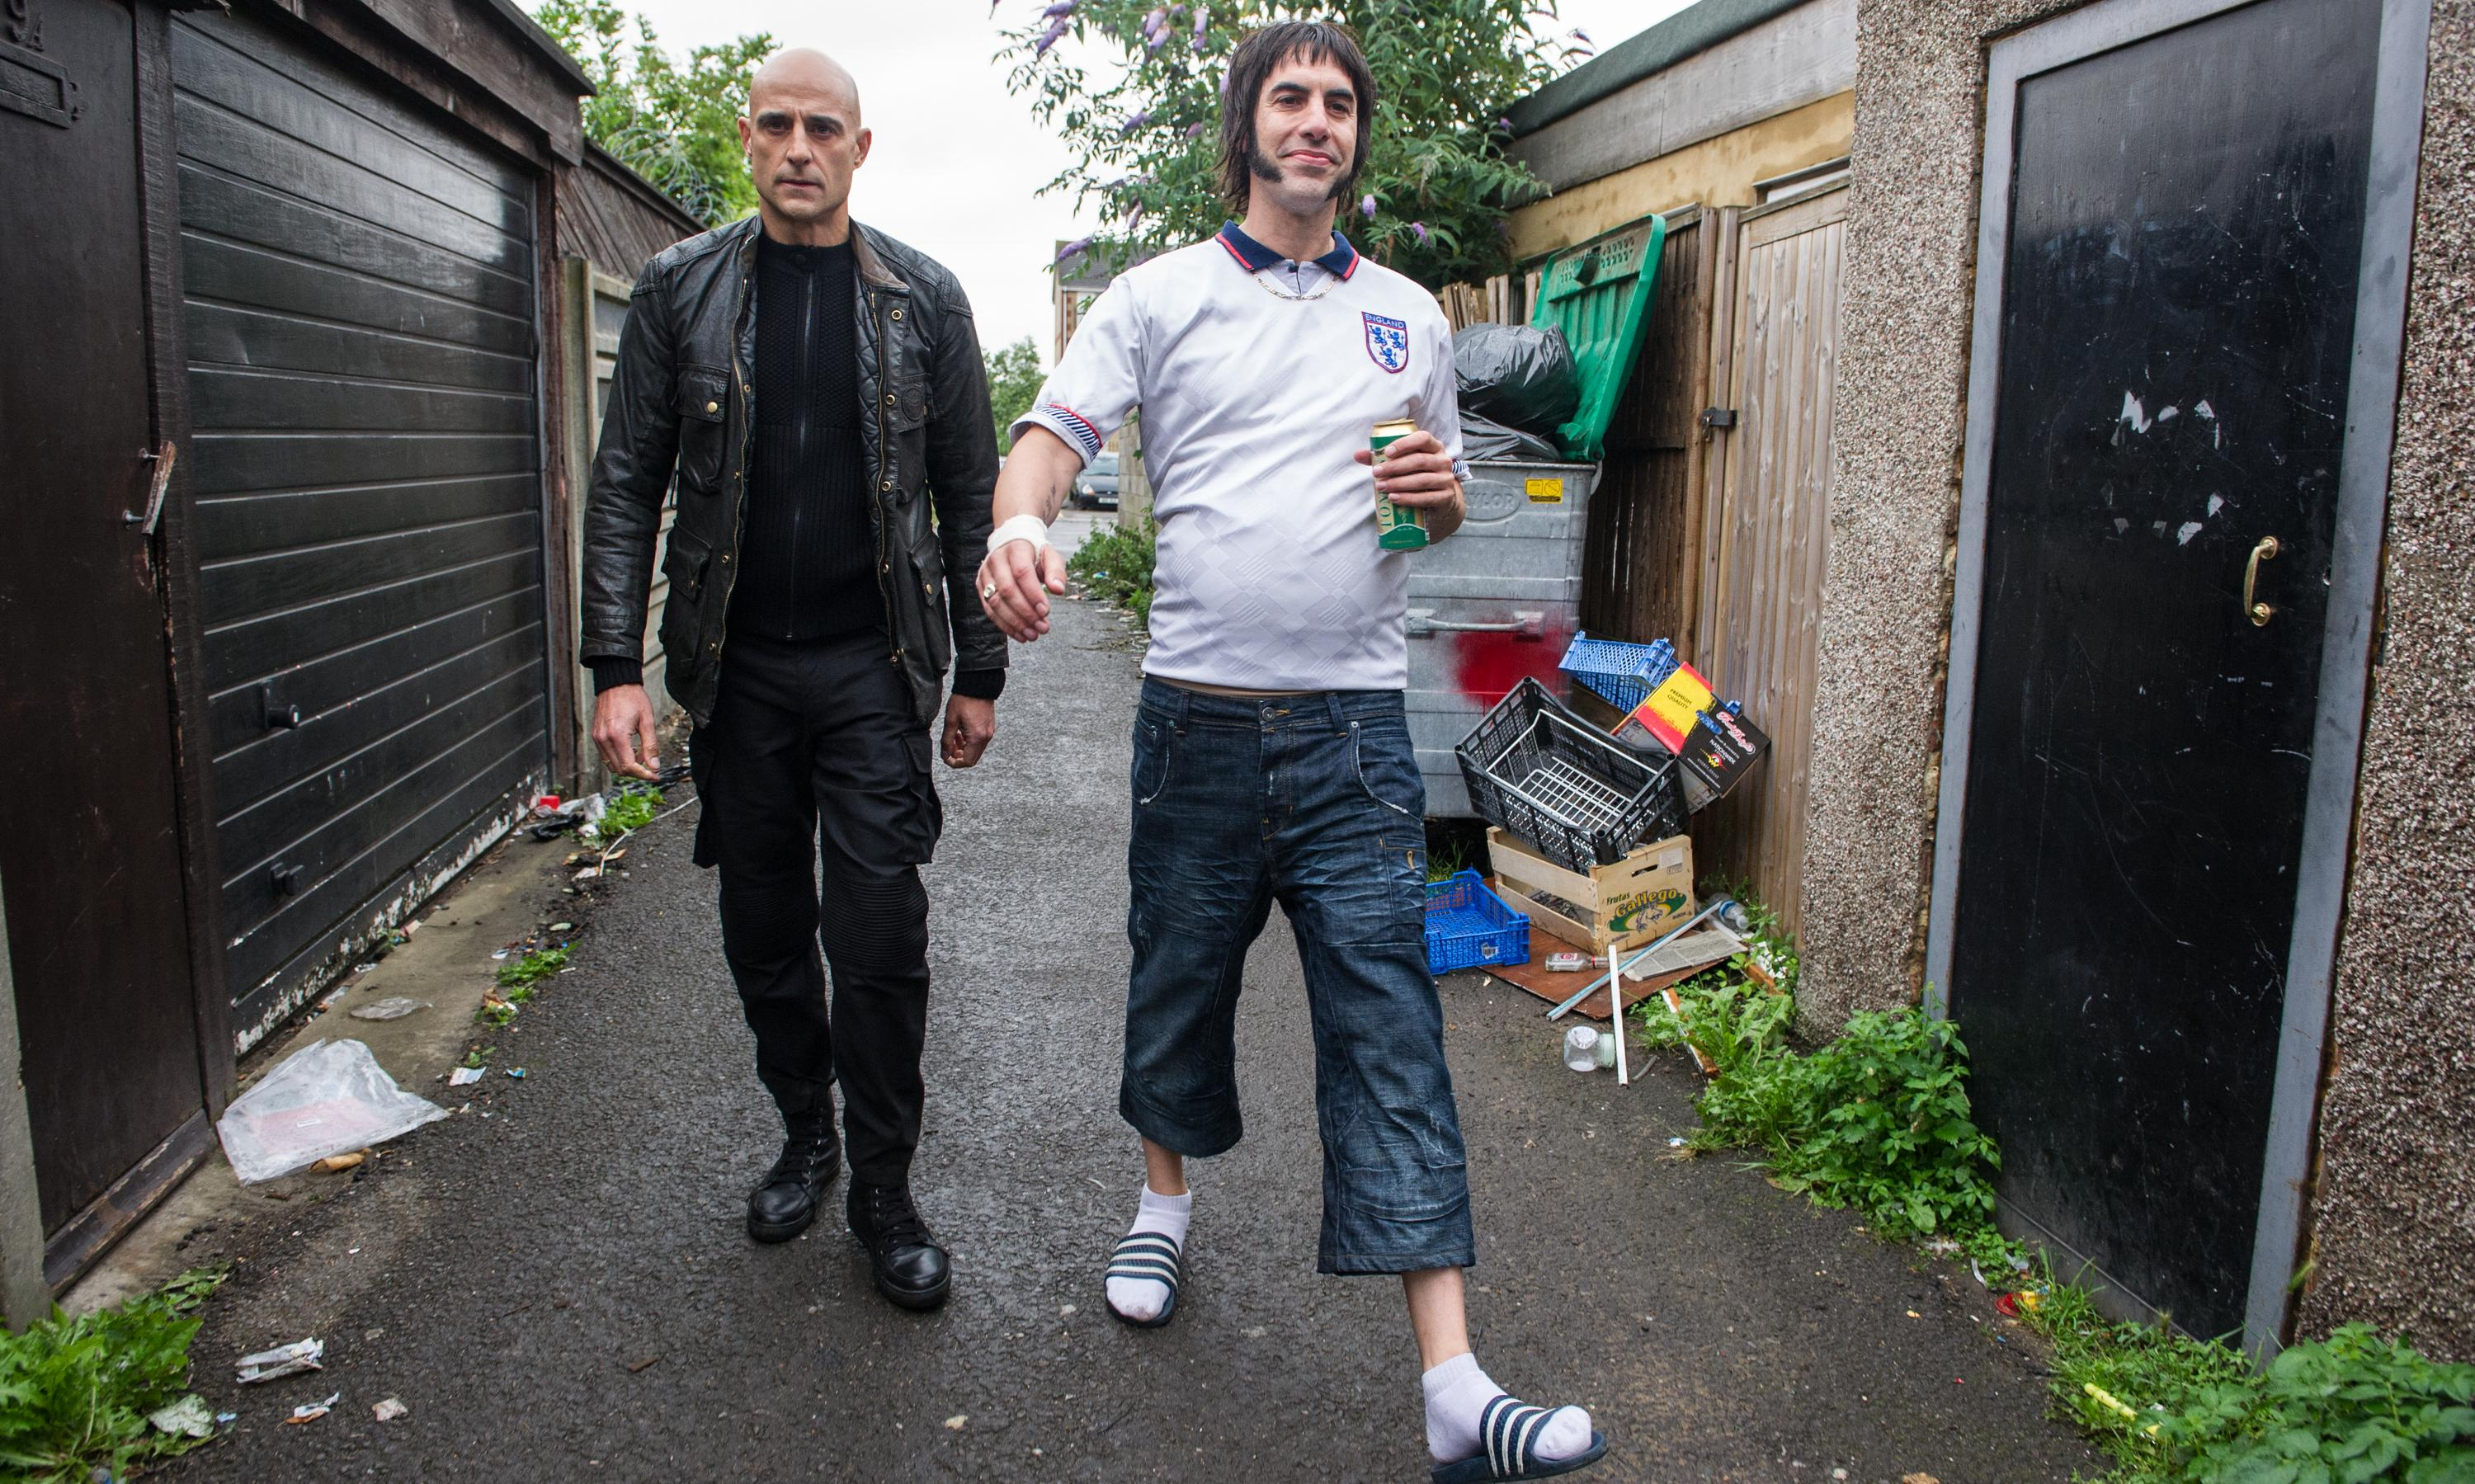 POLAR OPPOSITES: Mark Strong and Sacha Baron Cohen play very different characters in Grimsby.